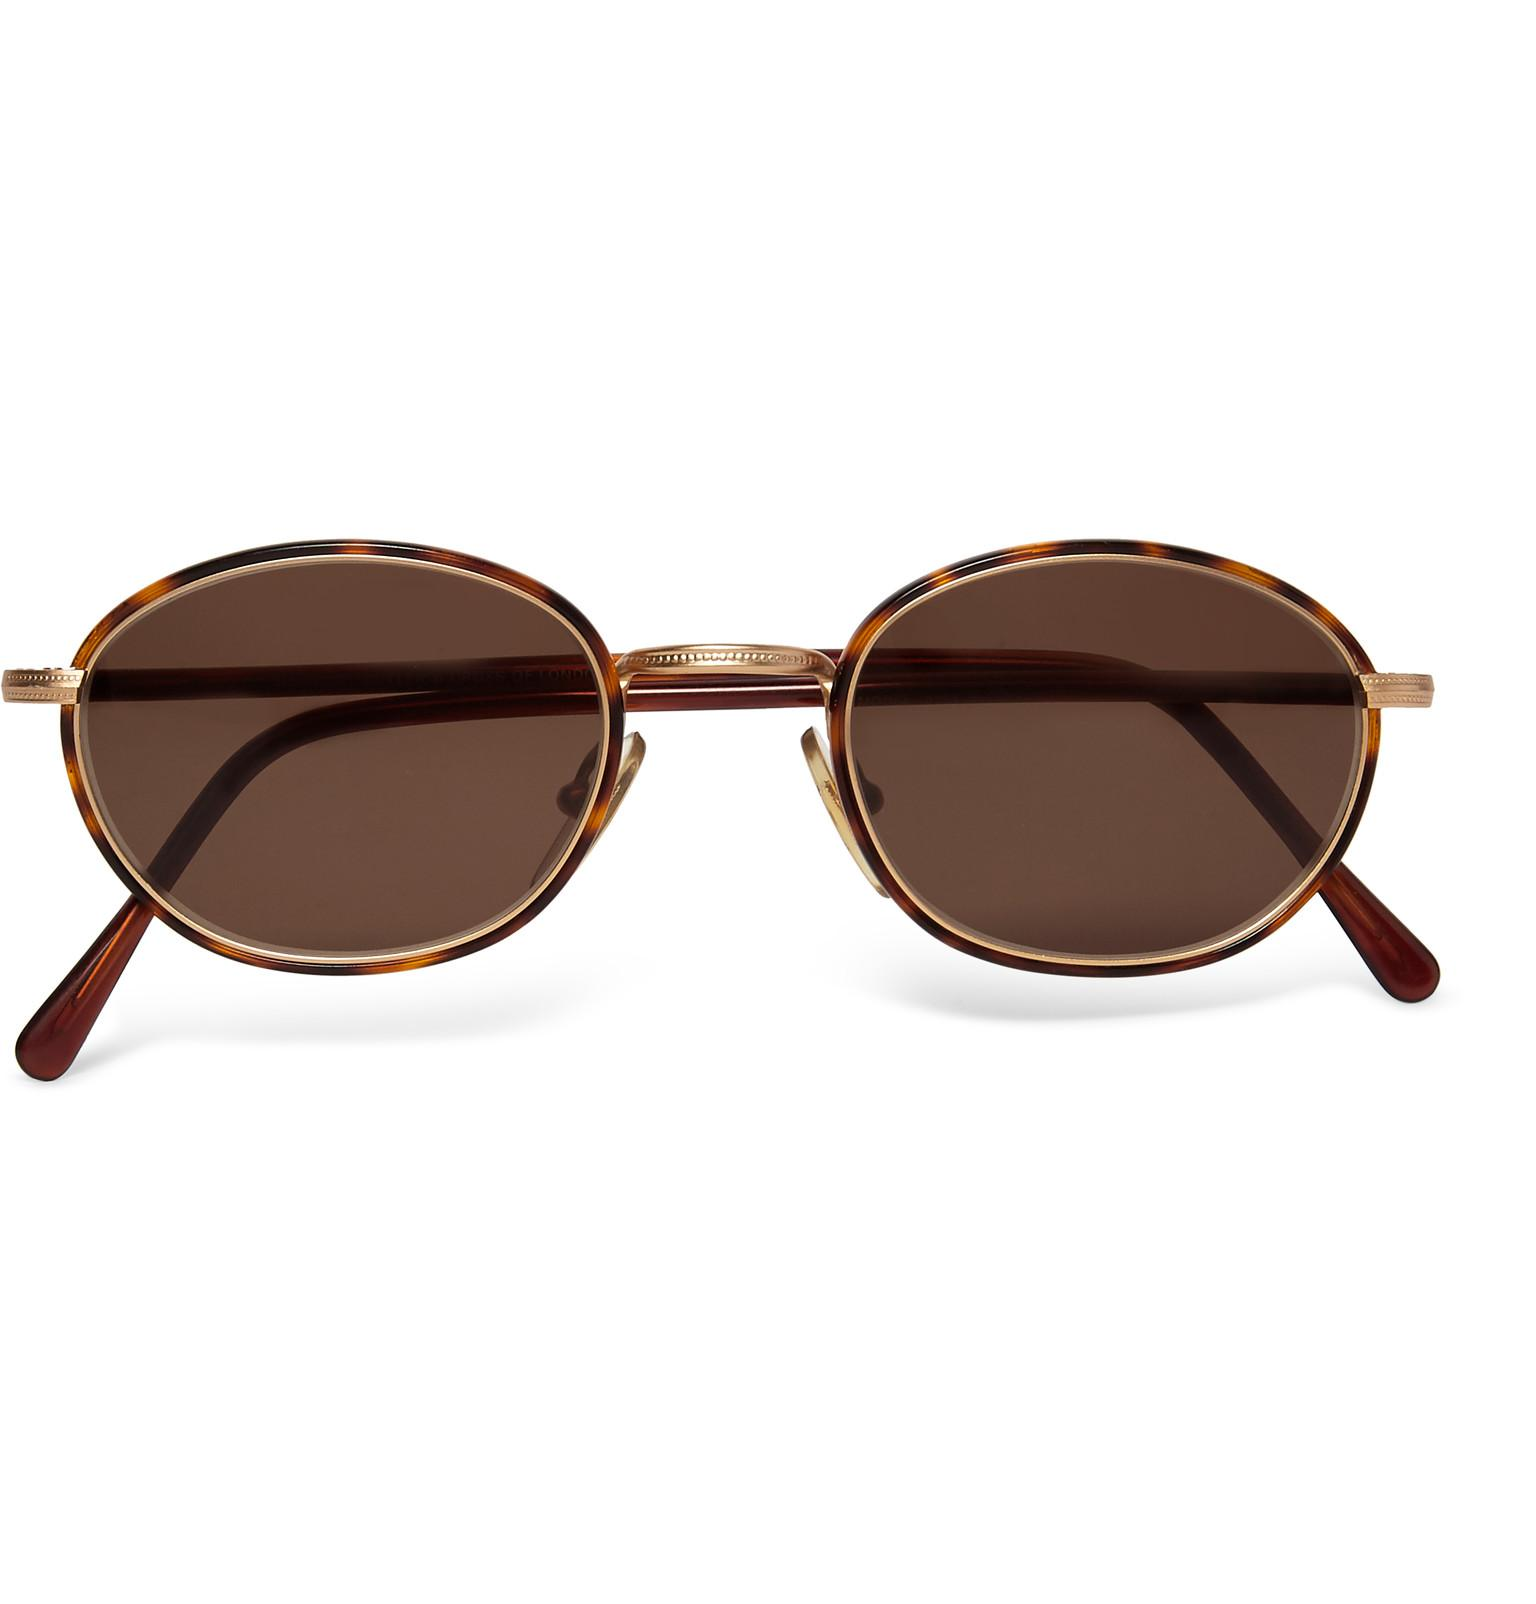 Men s Round Gold Frame Sunglasses : Cutler & gross 1995 Ltd Vintage Round-frame Acetate And ...